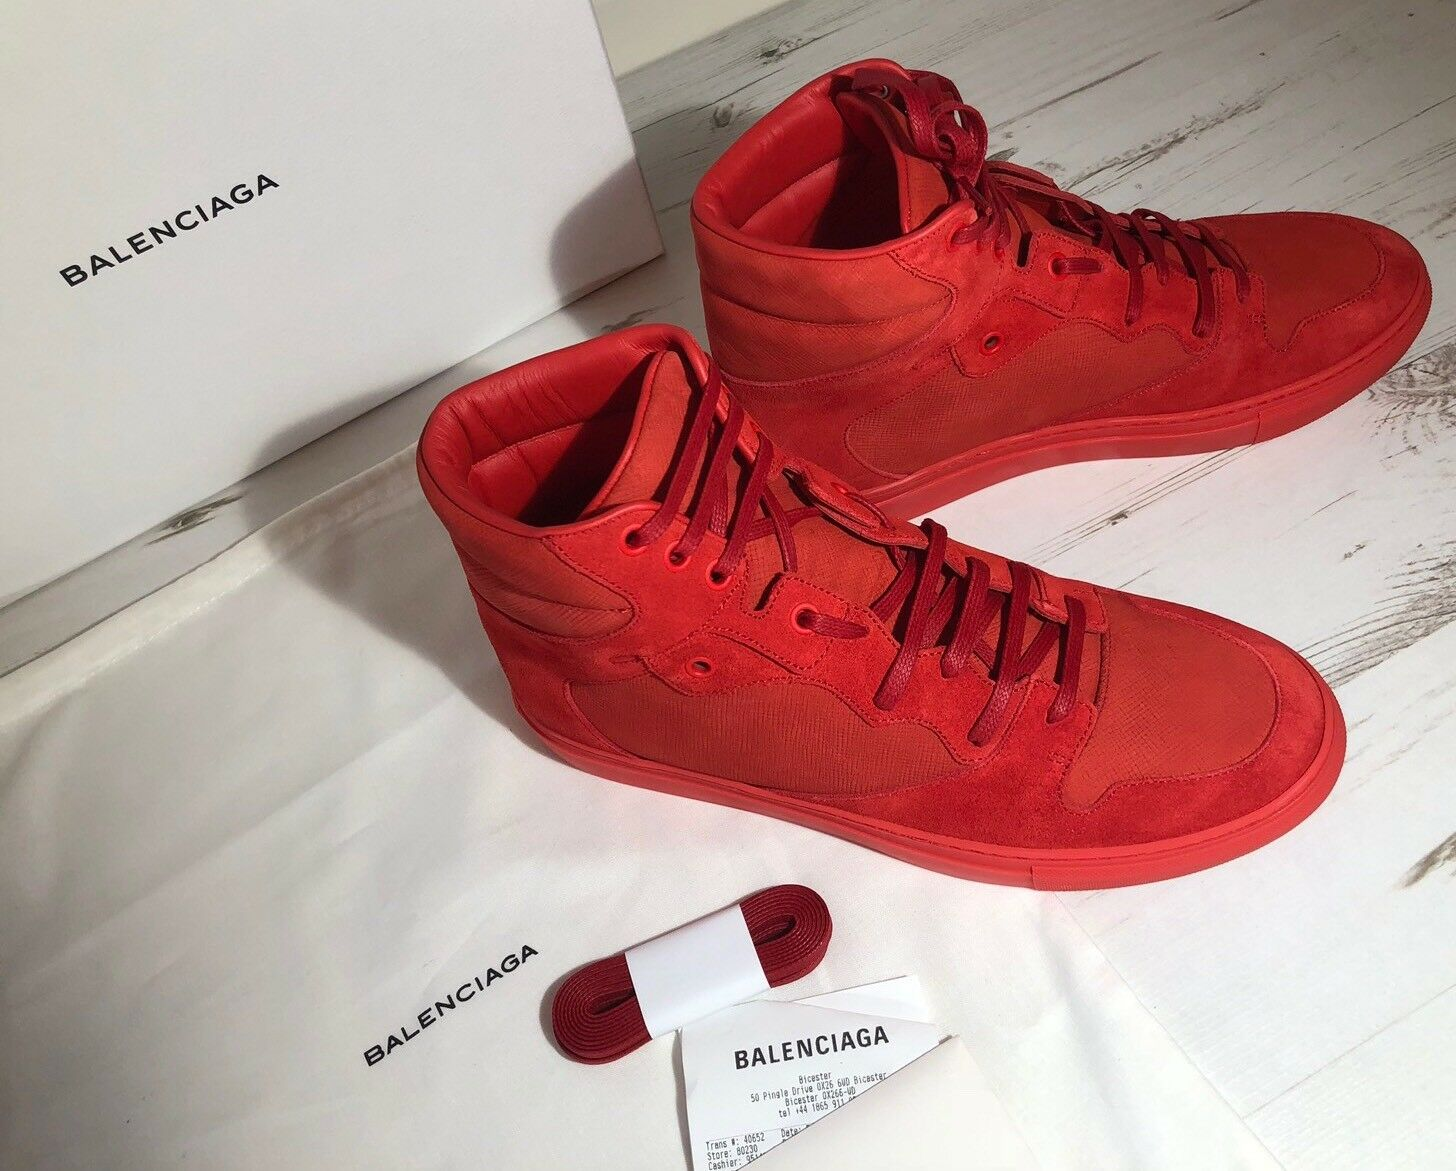 Balenciaga Men's Red Suede High Top Trainers Size IT 40 Brand New RRP